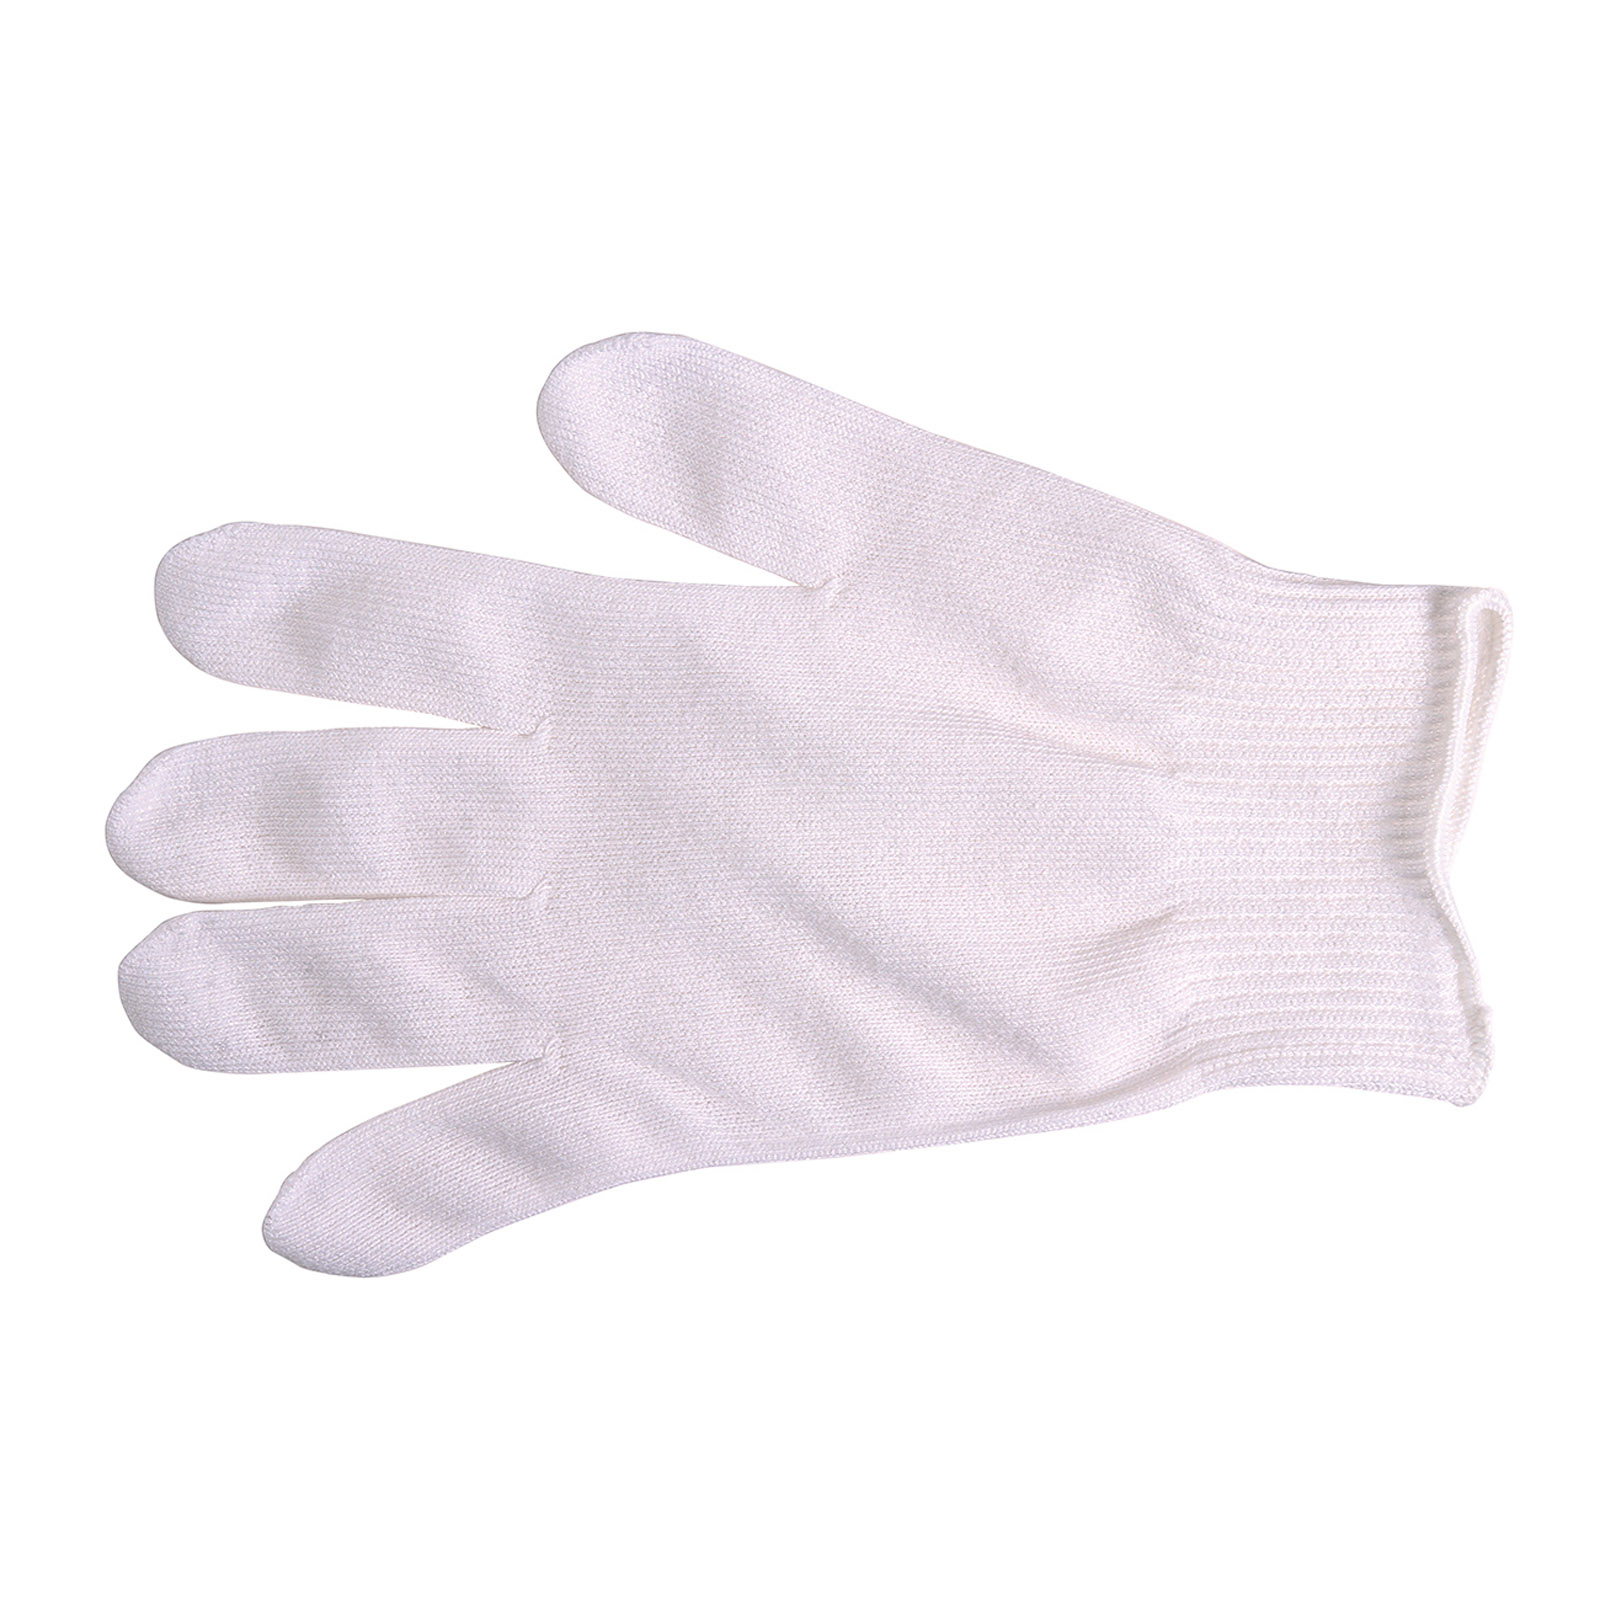 Mercer Culinary M33411L glove, cut resistant